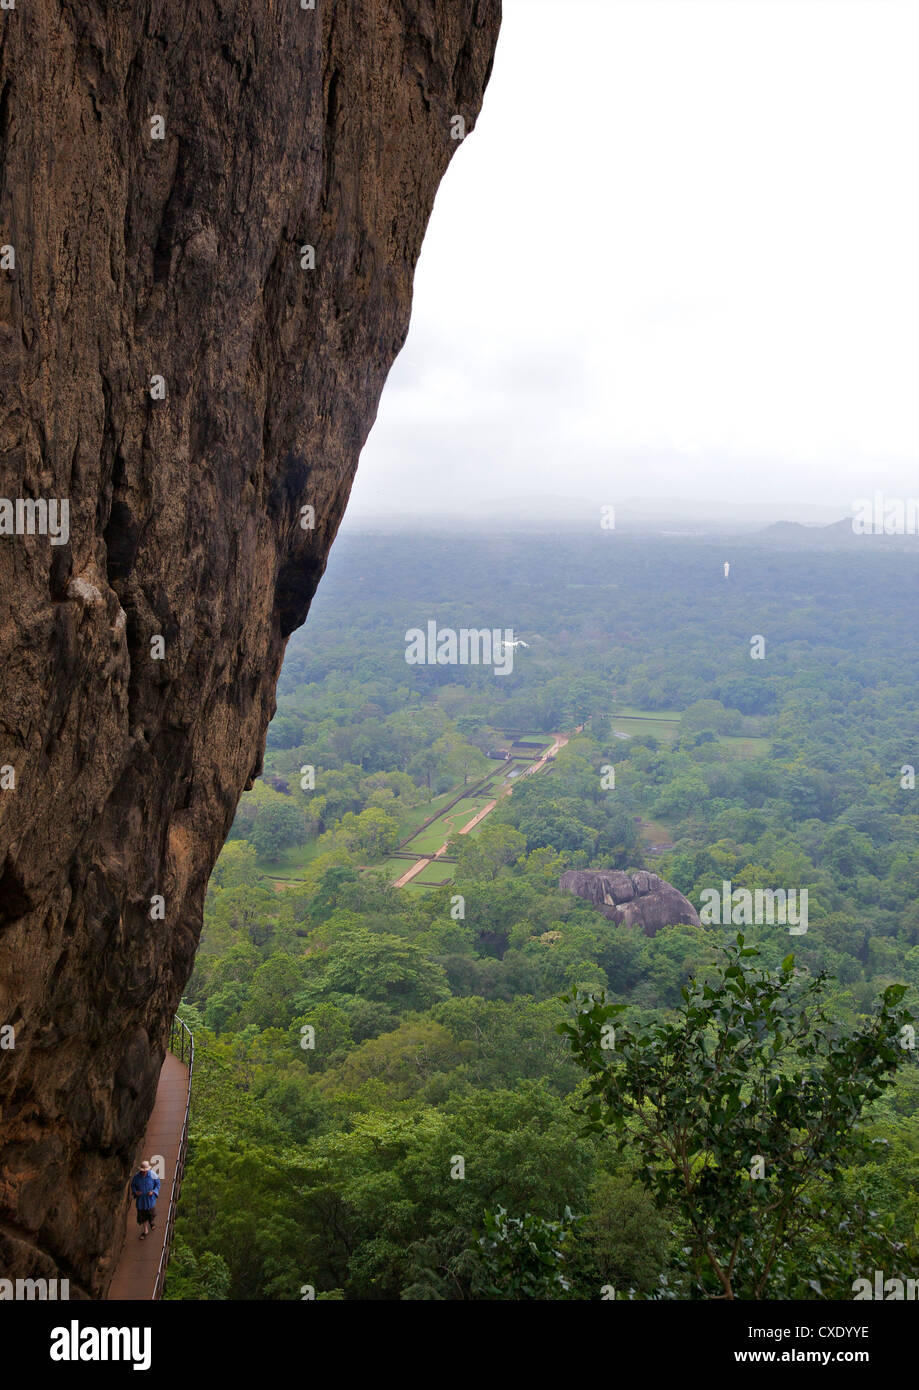 Walkway on Sigiriya Lion Rock Fortress, 5th century AD, UNESCO World Heritage Site,  Sri Lanka, Asia - Stock Image